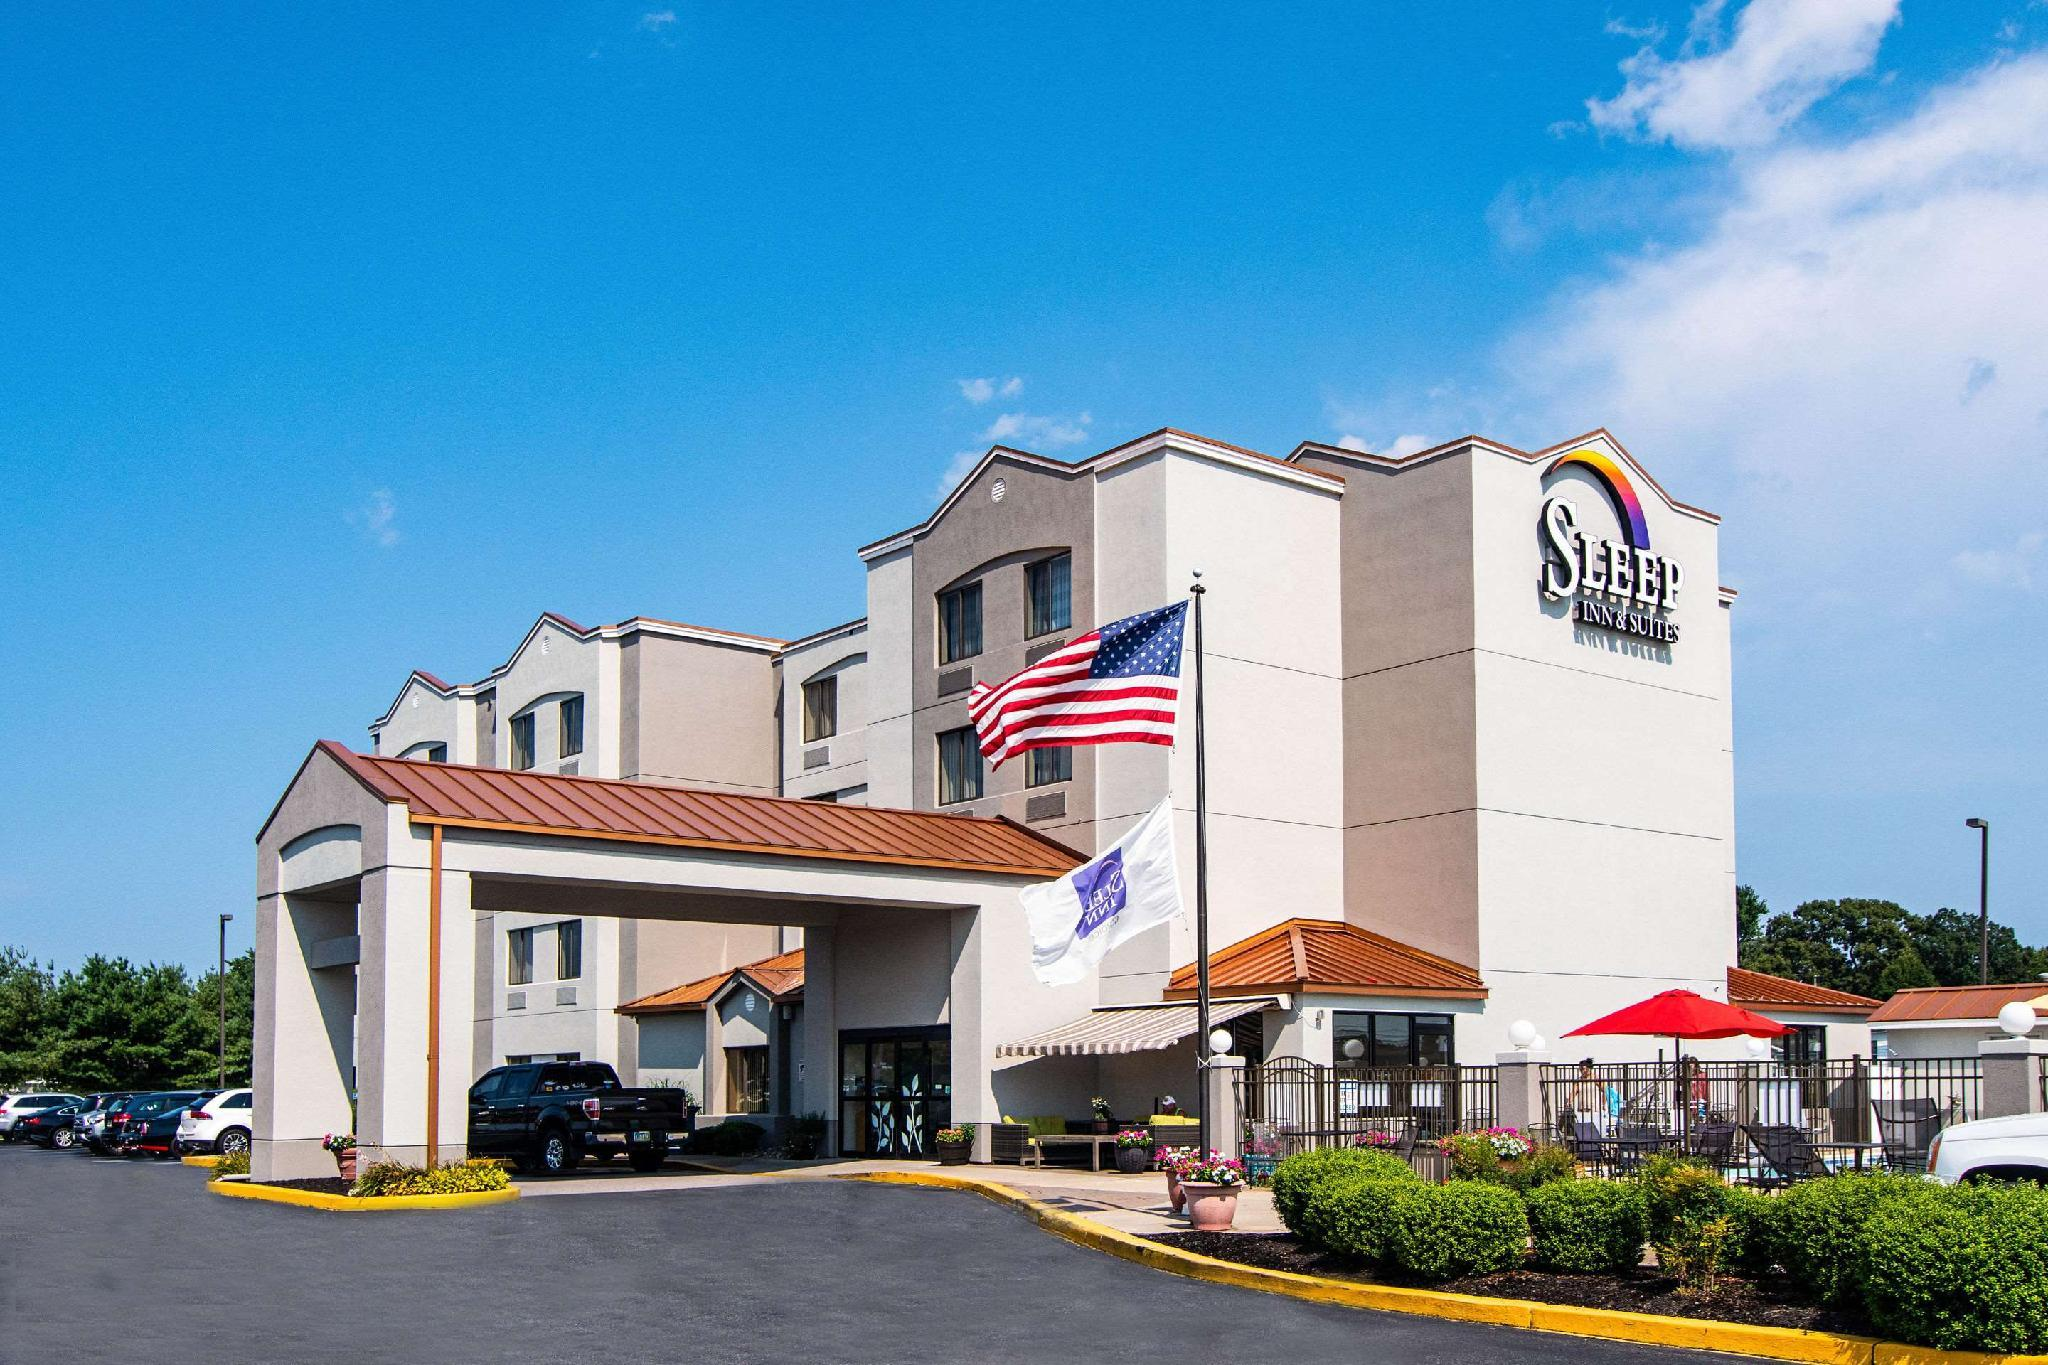 Rehoboth beach gay inns and hotels guide